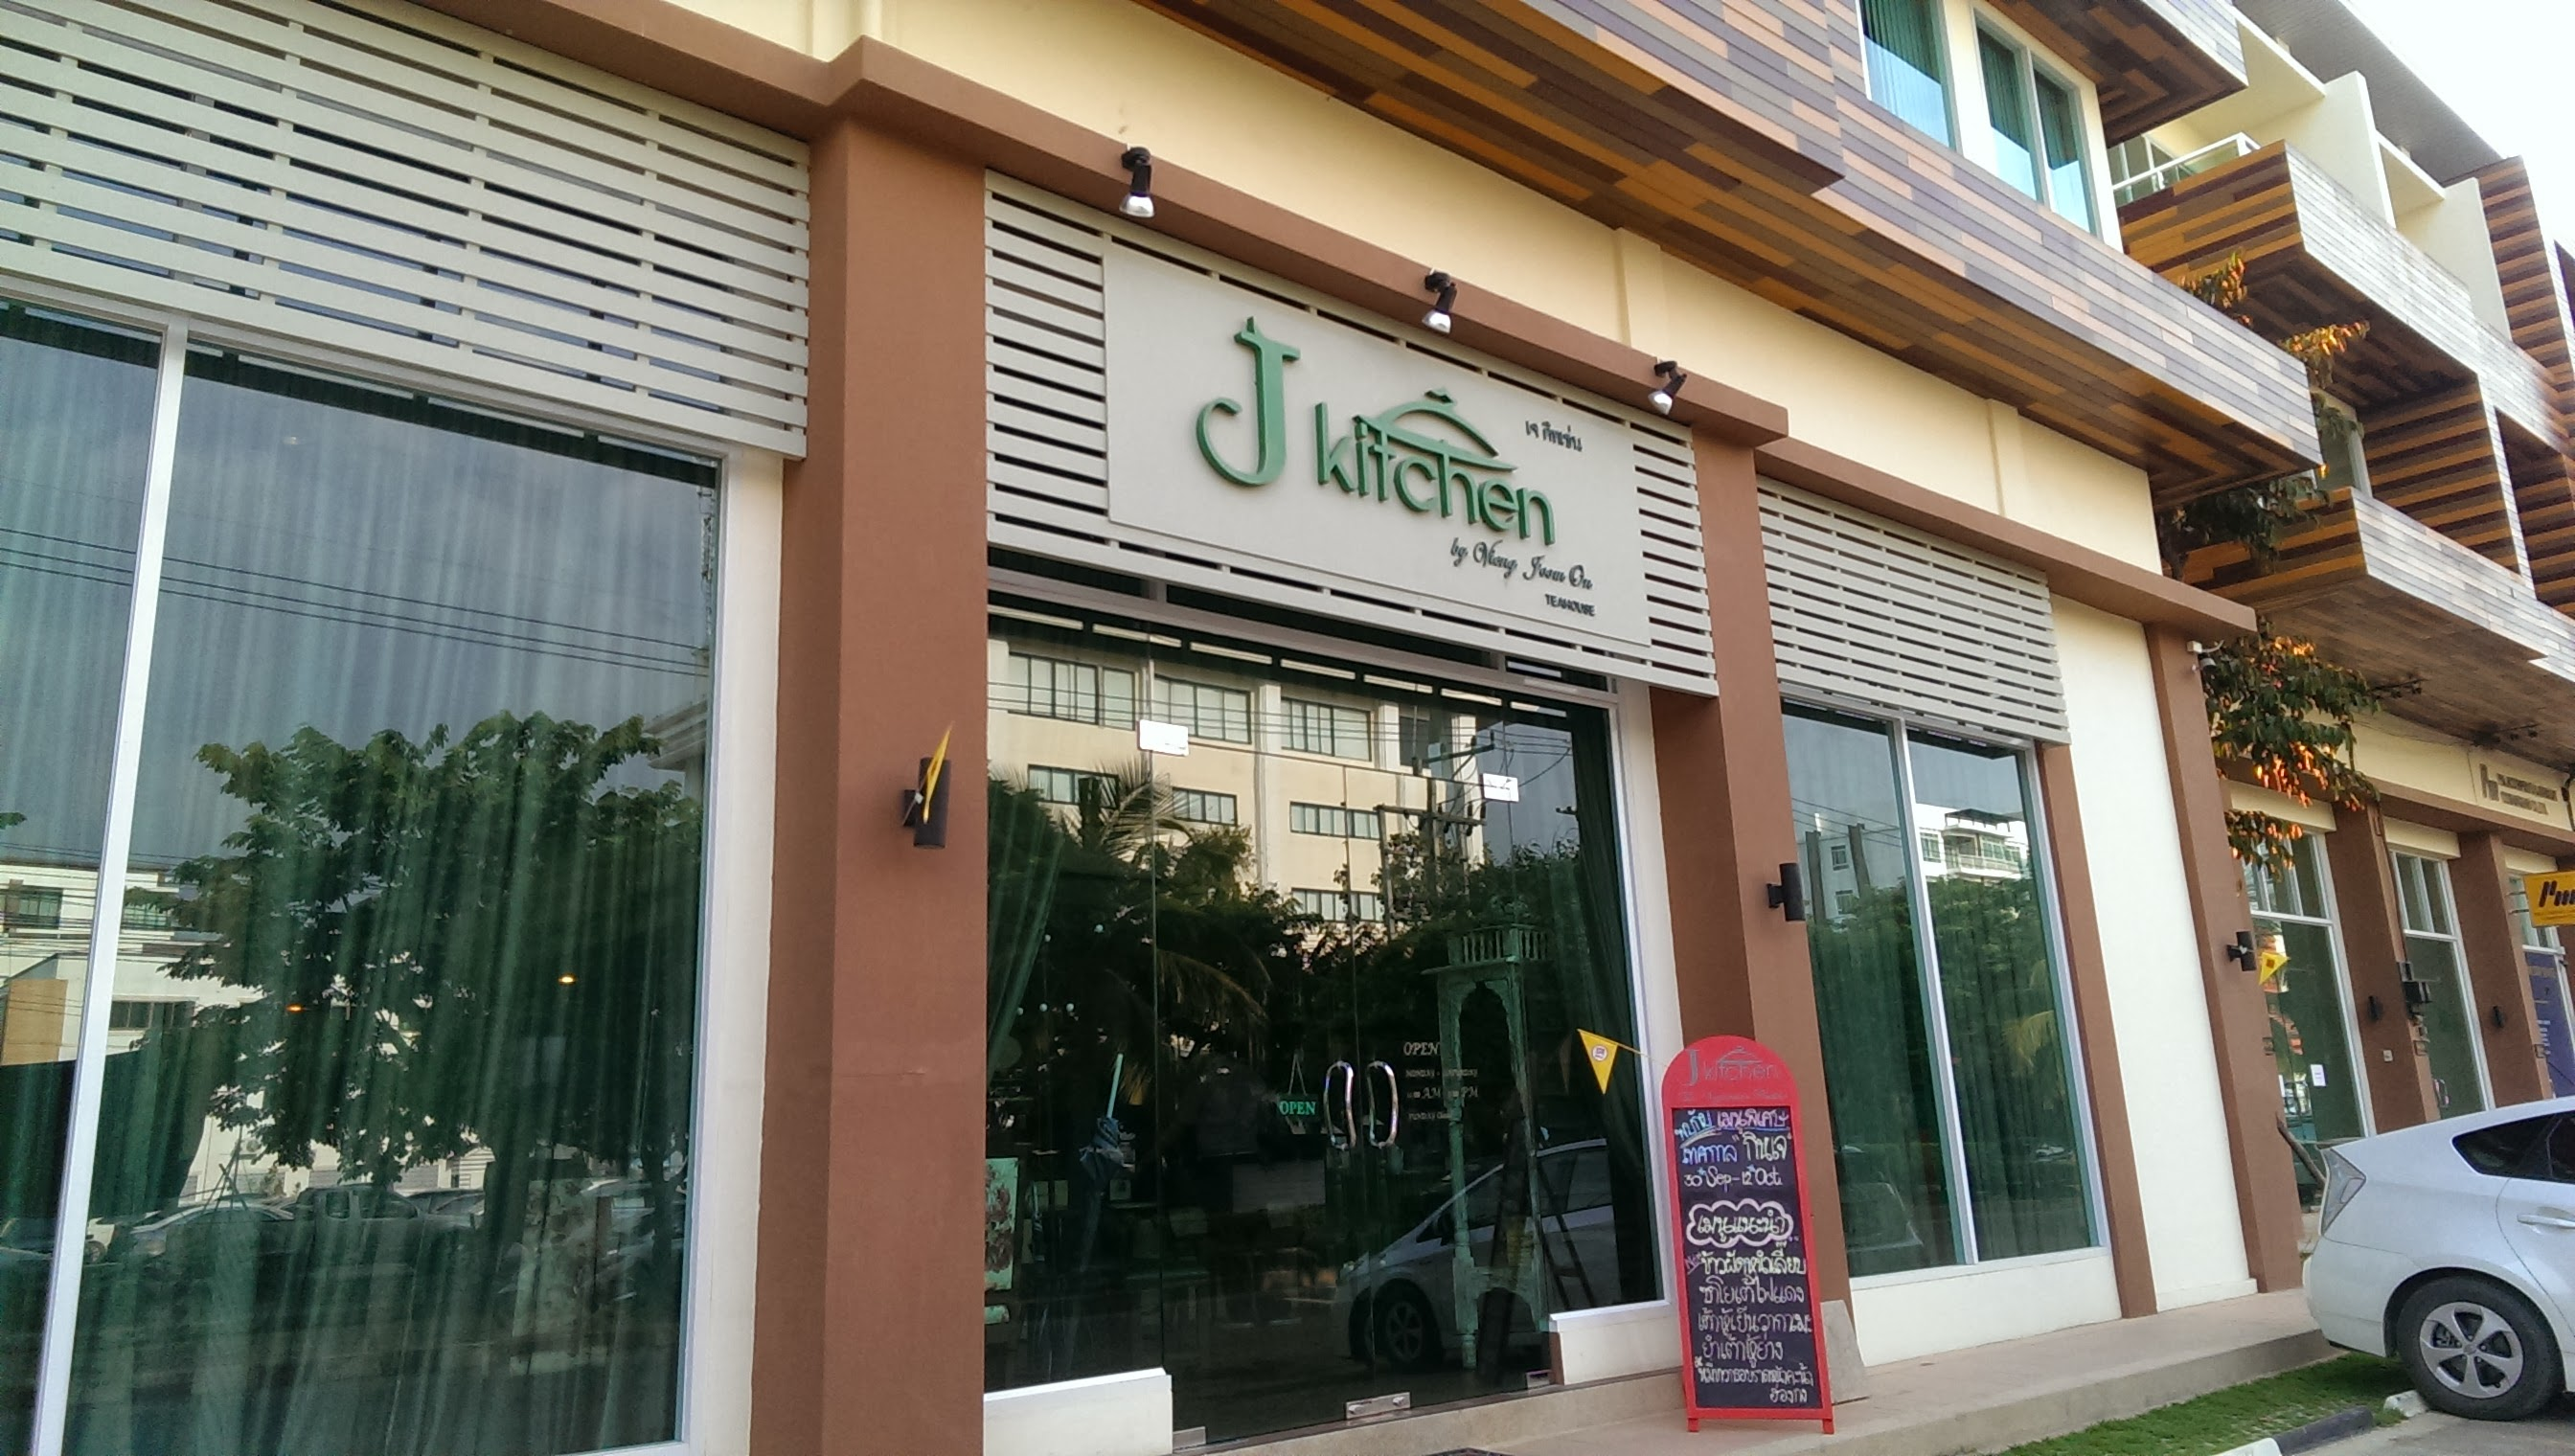 J Kitchen by Vieng Joom On